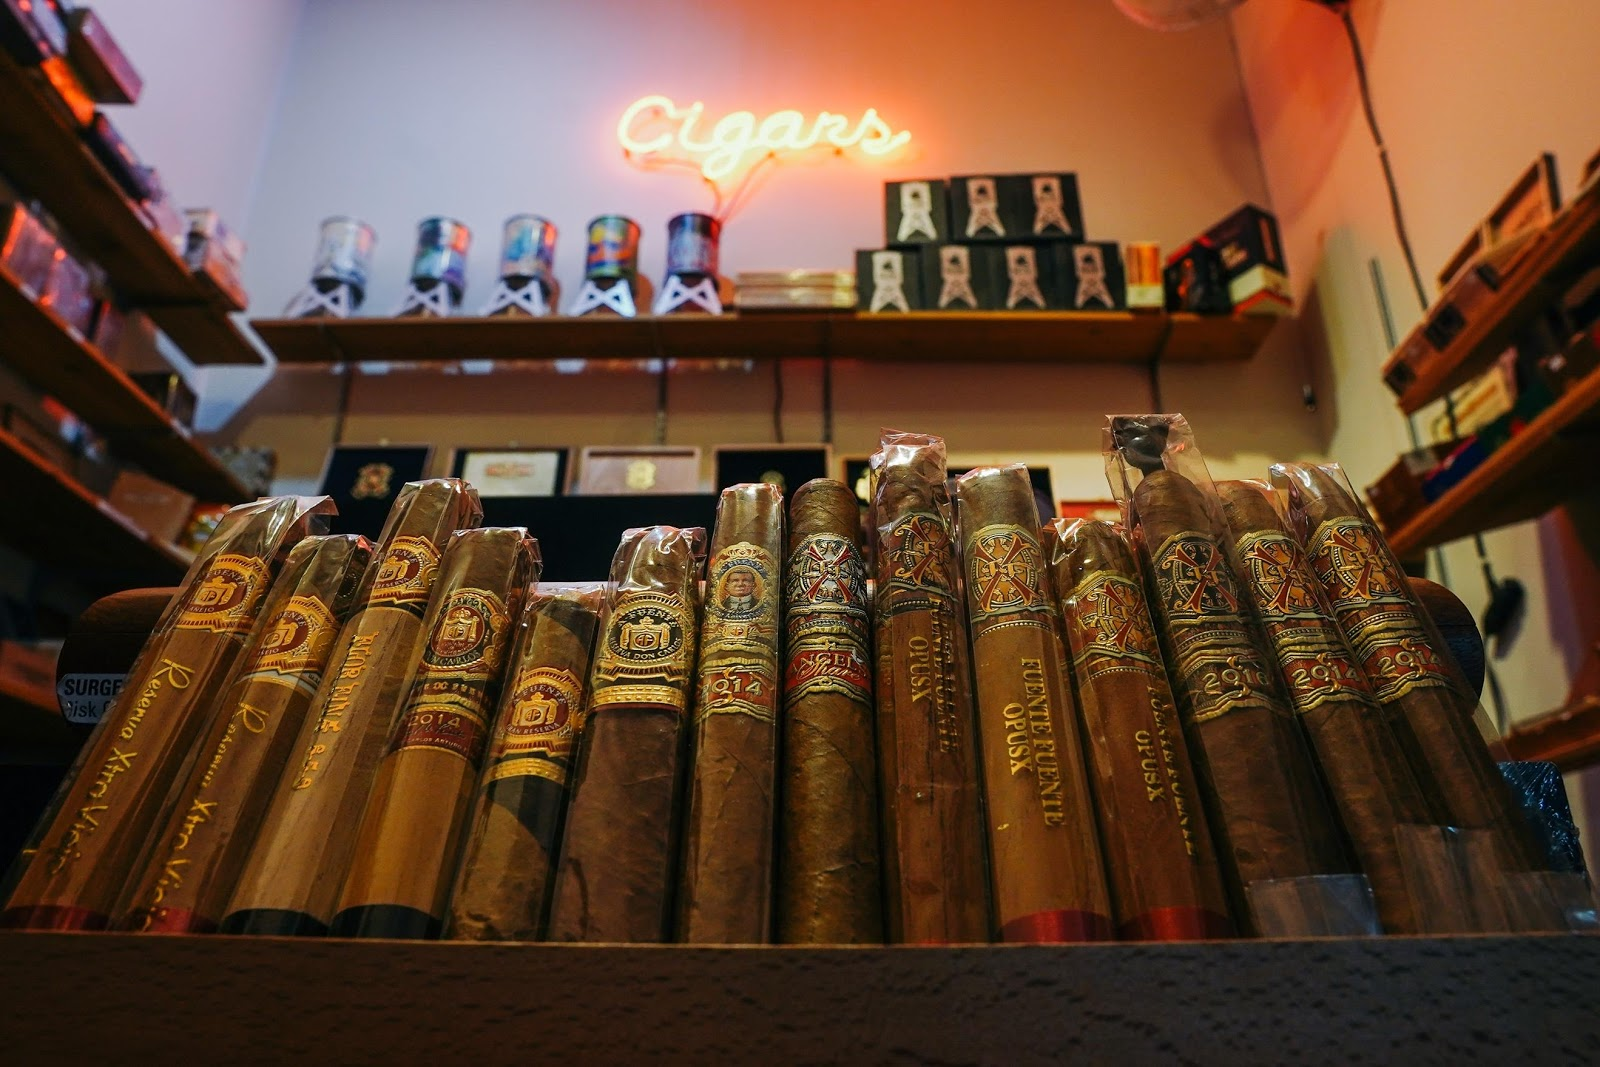 A cigar display in a line wrapped in cellophane